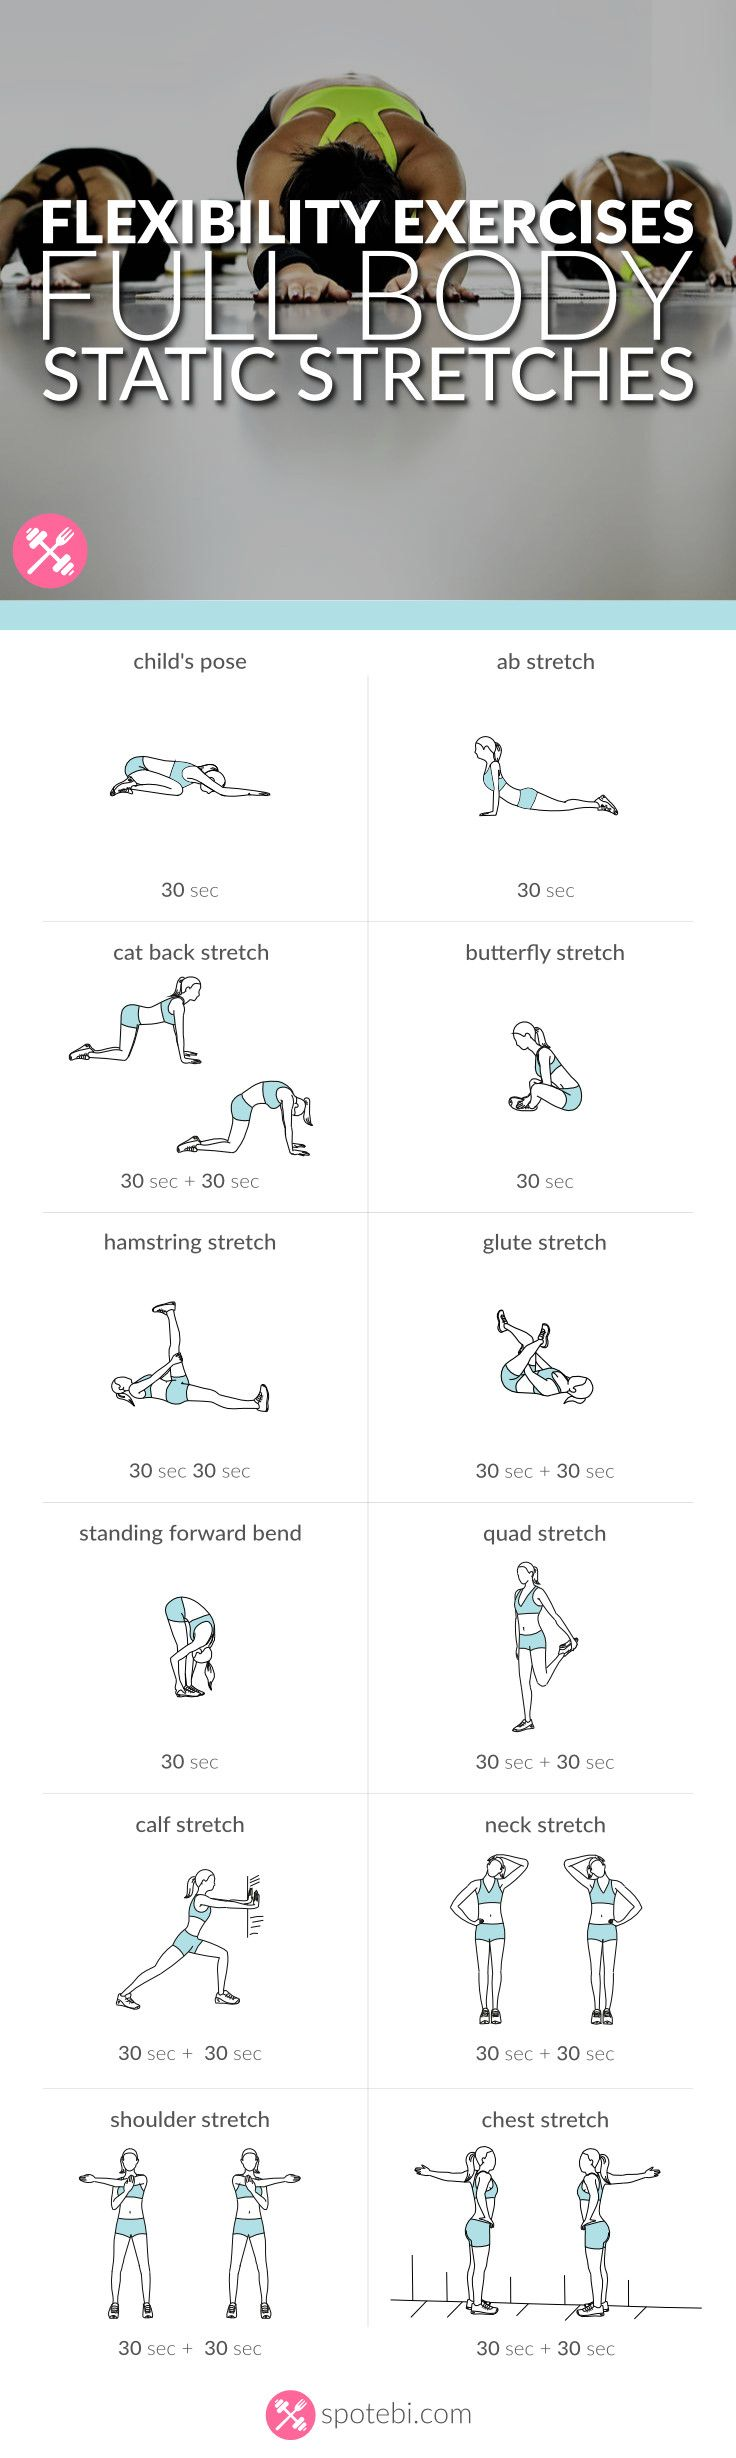 Stretch your full body with this set of flexibility exercises. A static stretching routine to improve joint range of motion and stretch muscles and tendons.